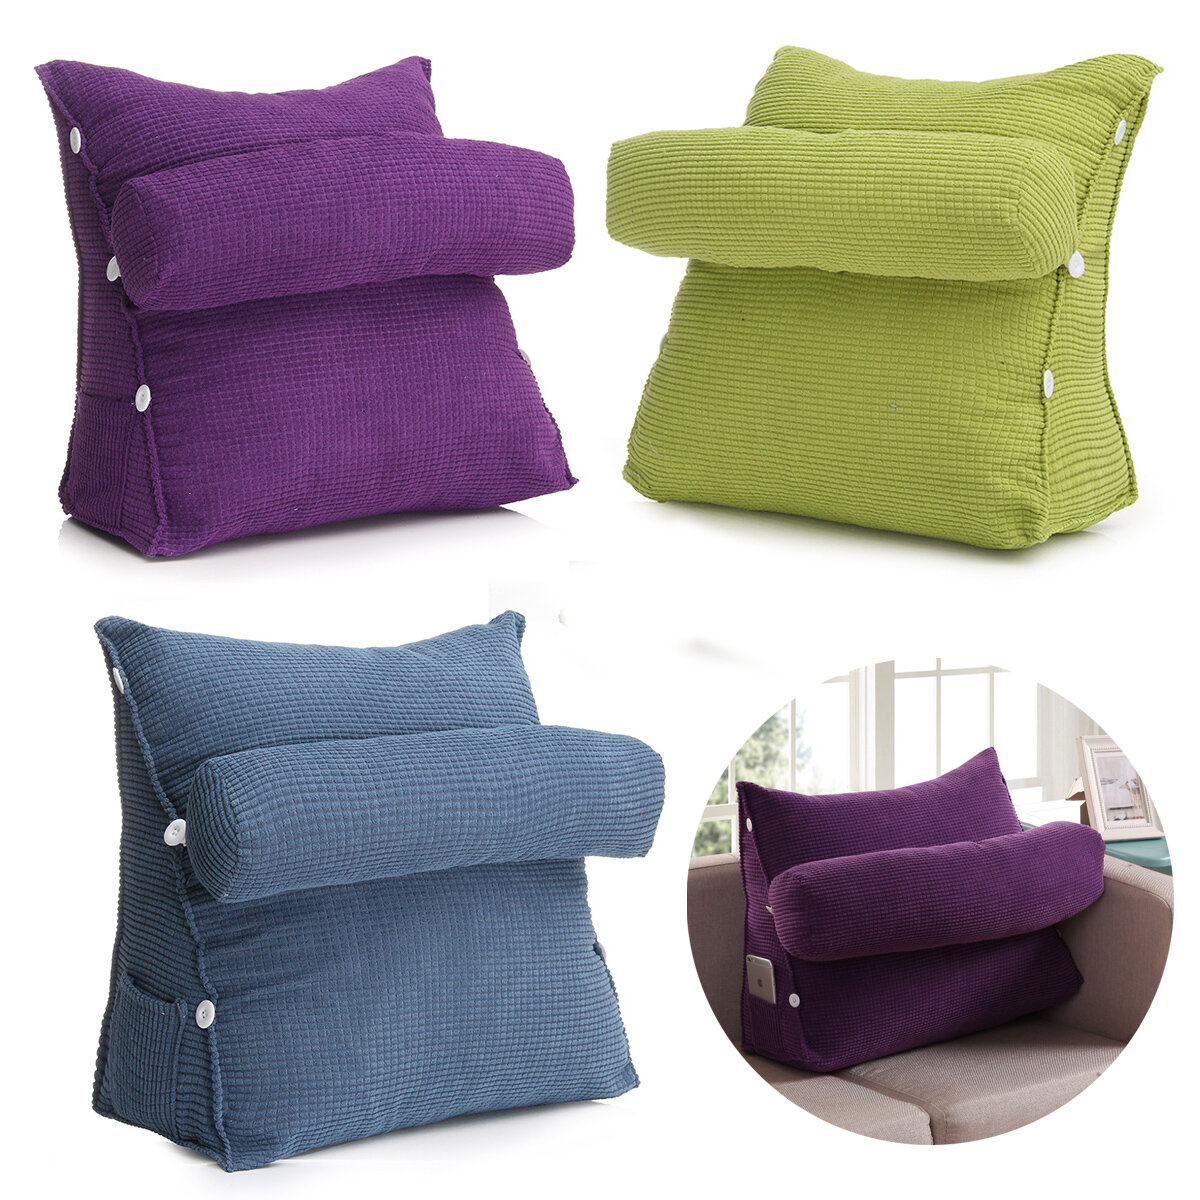 Adjustable Pearl Wool Back Wedge Pillow Reading Bedrest Rest Support Thwartwise Pain Relief  Cushion